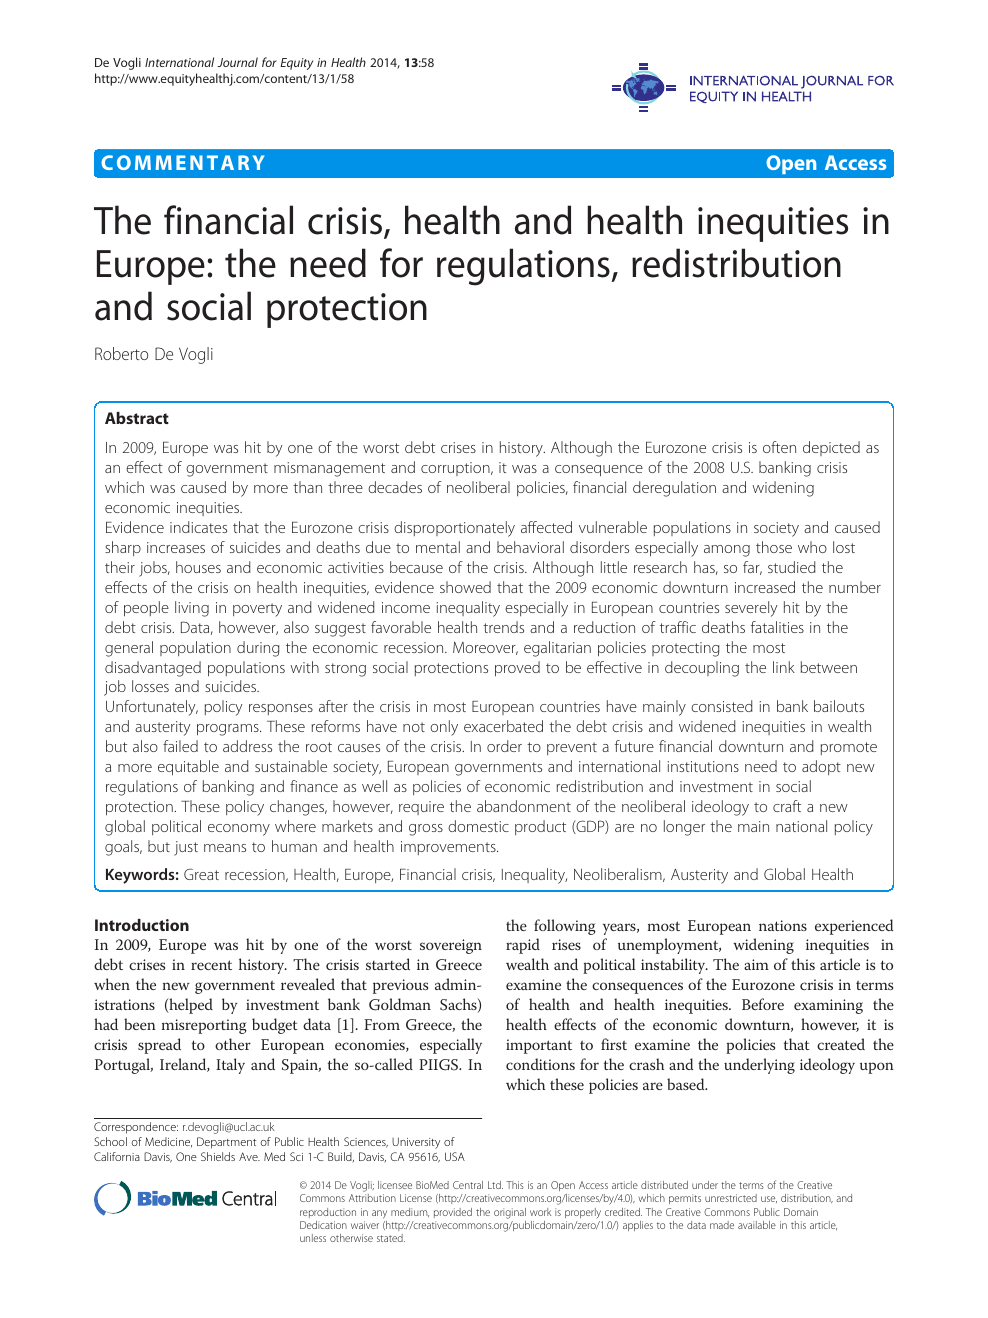 The financial crisis, health and health inequities in Europe